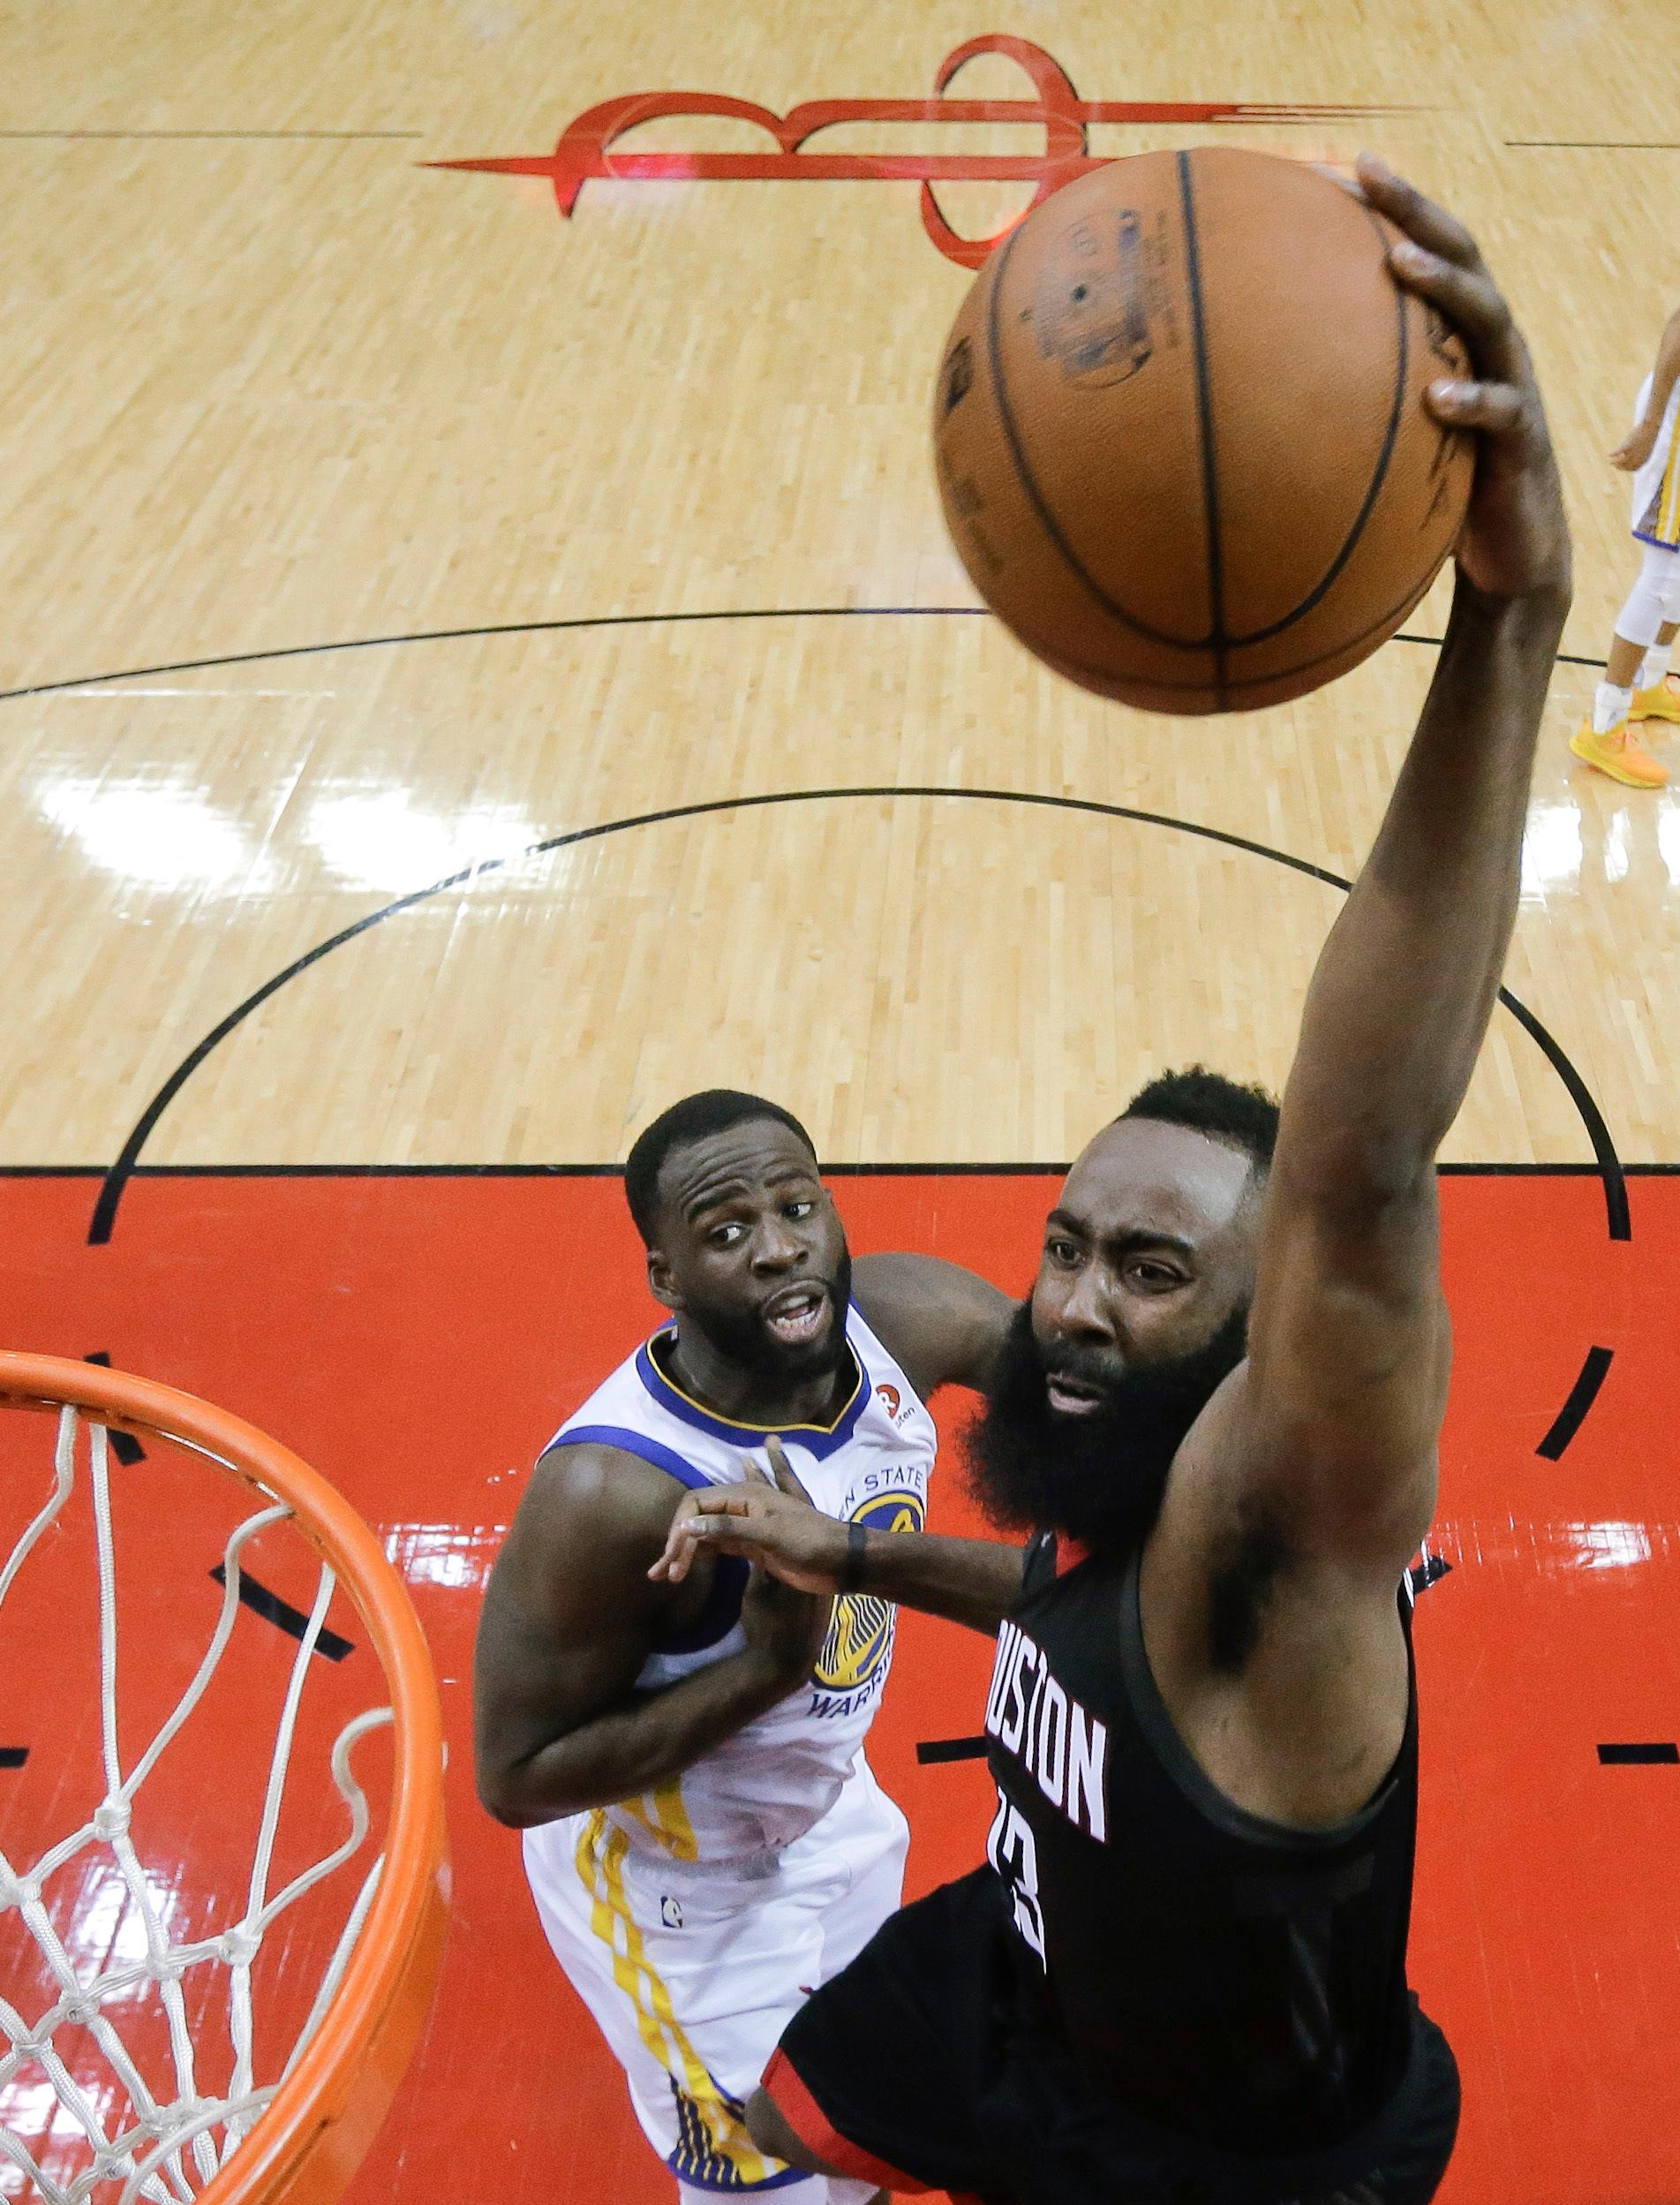 Houston Rockets guard James Harden scores over Golden State Warriors forward Kevon Looney in the first half during Game 5 of the NBA basketball playoffs Western Conference Finals, Thursday, May 24, 2018, in Houston. (AP Photo/David J. Phillip)